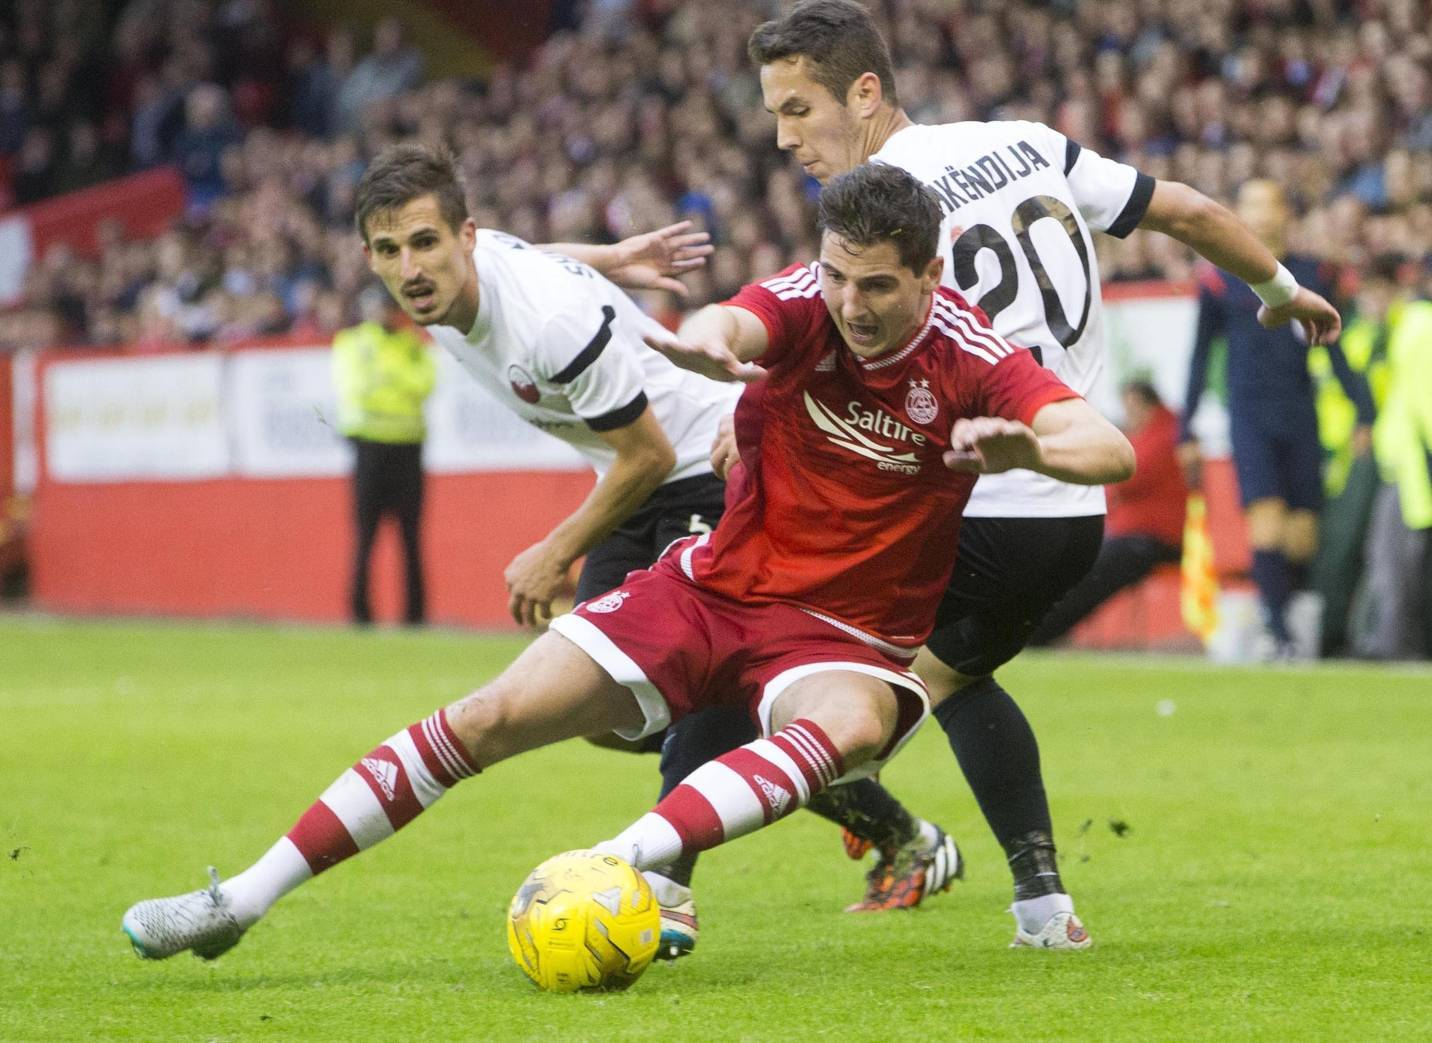 Aberdeen's Kenny Mclean  battles for the ball with Shkendija's Armend Alimi (left) and Victor Juffo (right) during the Europa League First Qualifying Round, Second Leg, at Pittodrie.